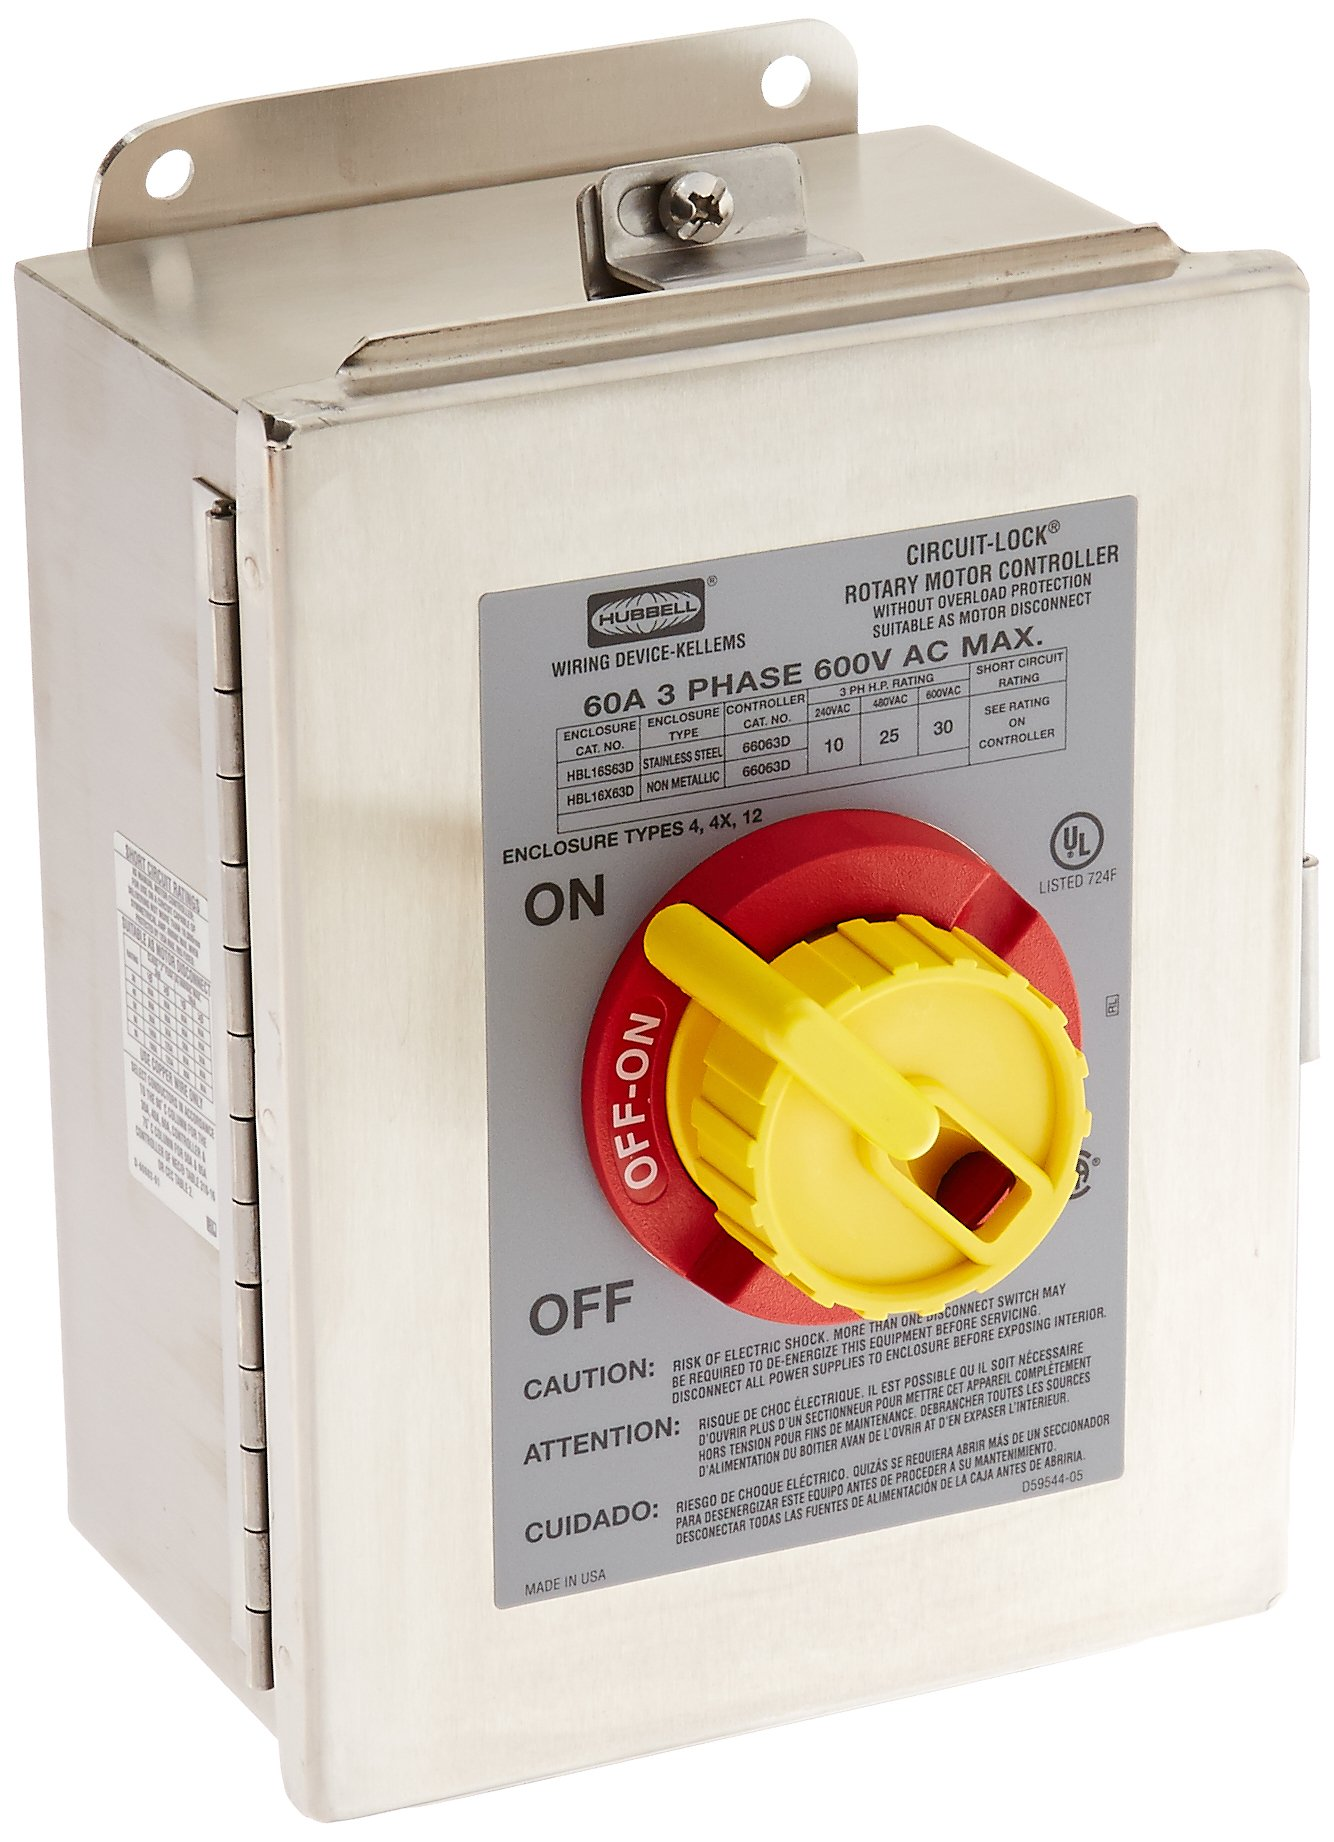 Hubbell HBL16S63D 3 Pole Rotary Disconnect Switch, 4X Stainless Steel Enclosure, 60 amp, 600V